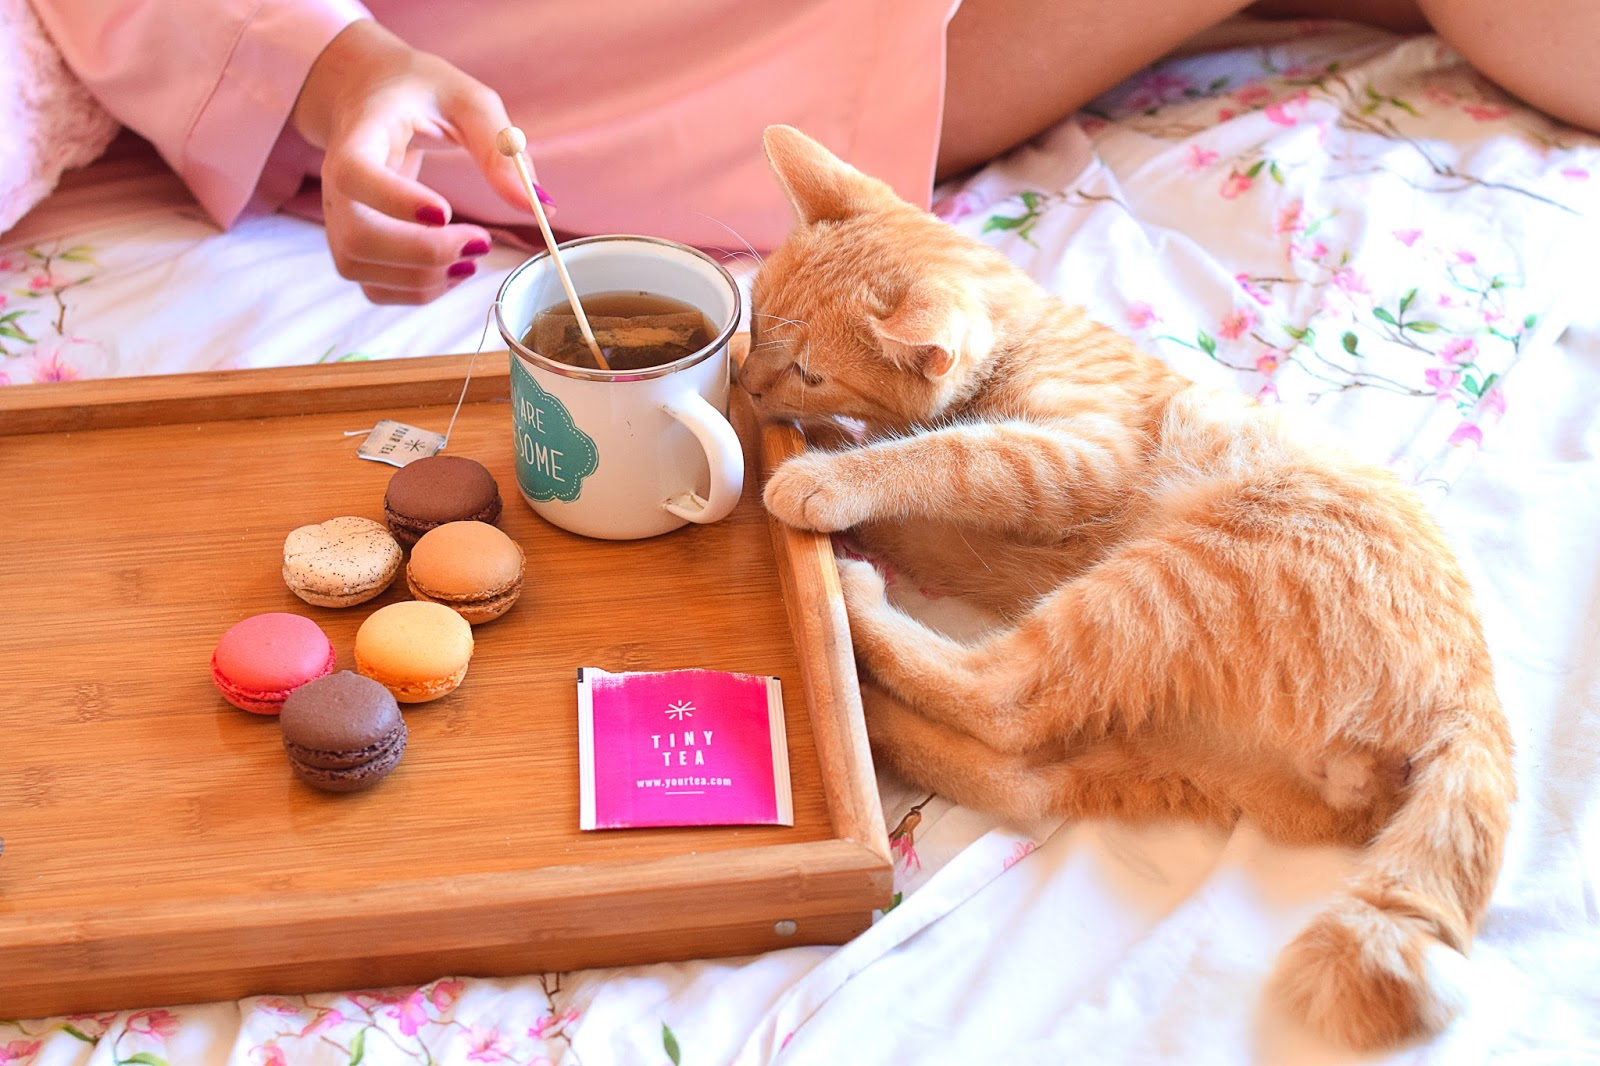 nery hdez, yourtea, tinyteatox, lifestyle, cat, gatito, celulitis, cellulite attack, asos fashion finder